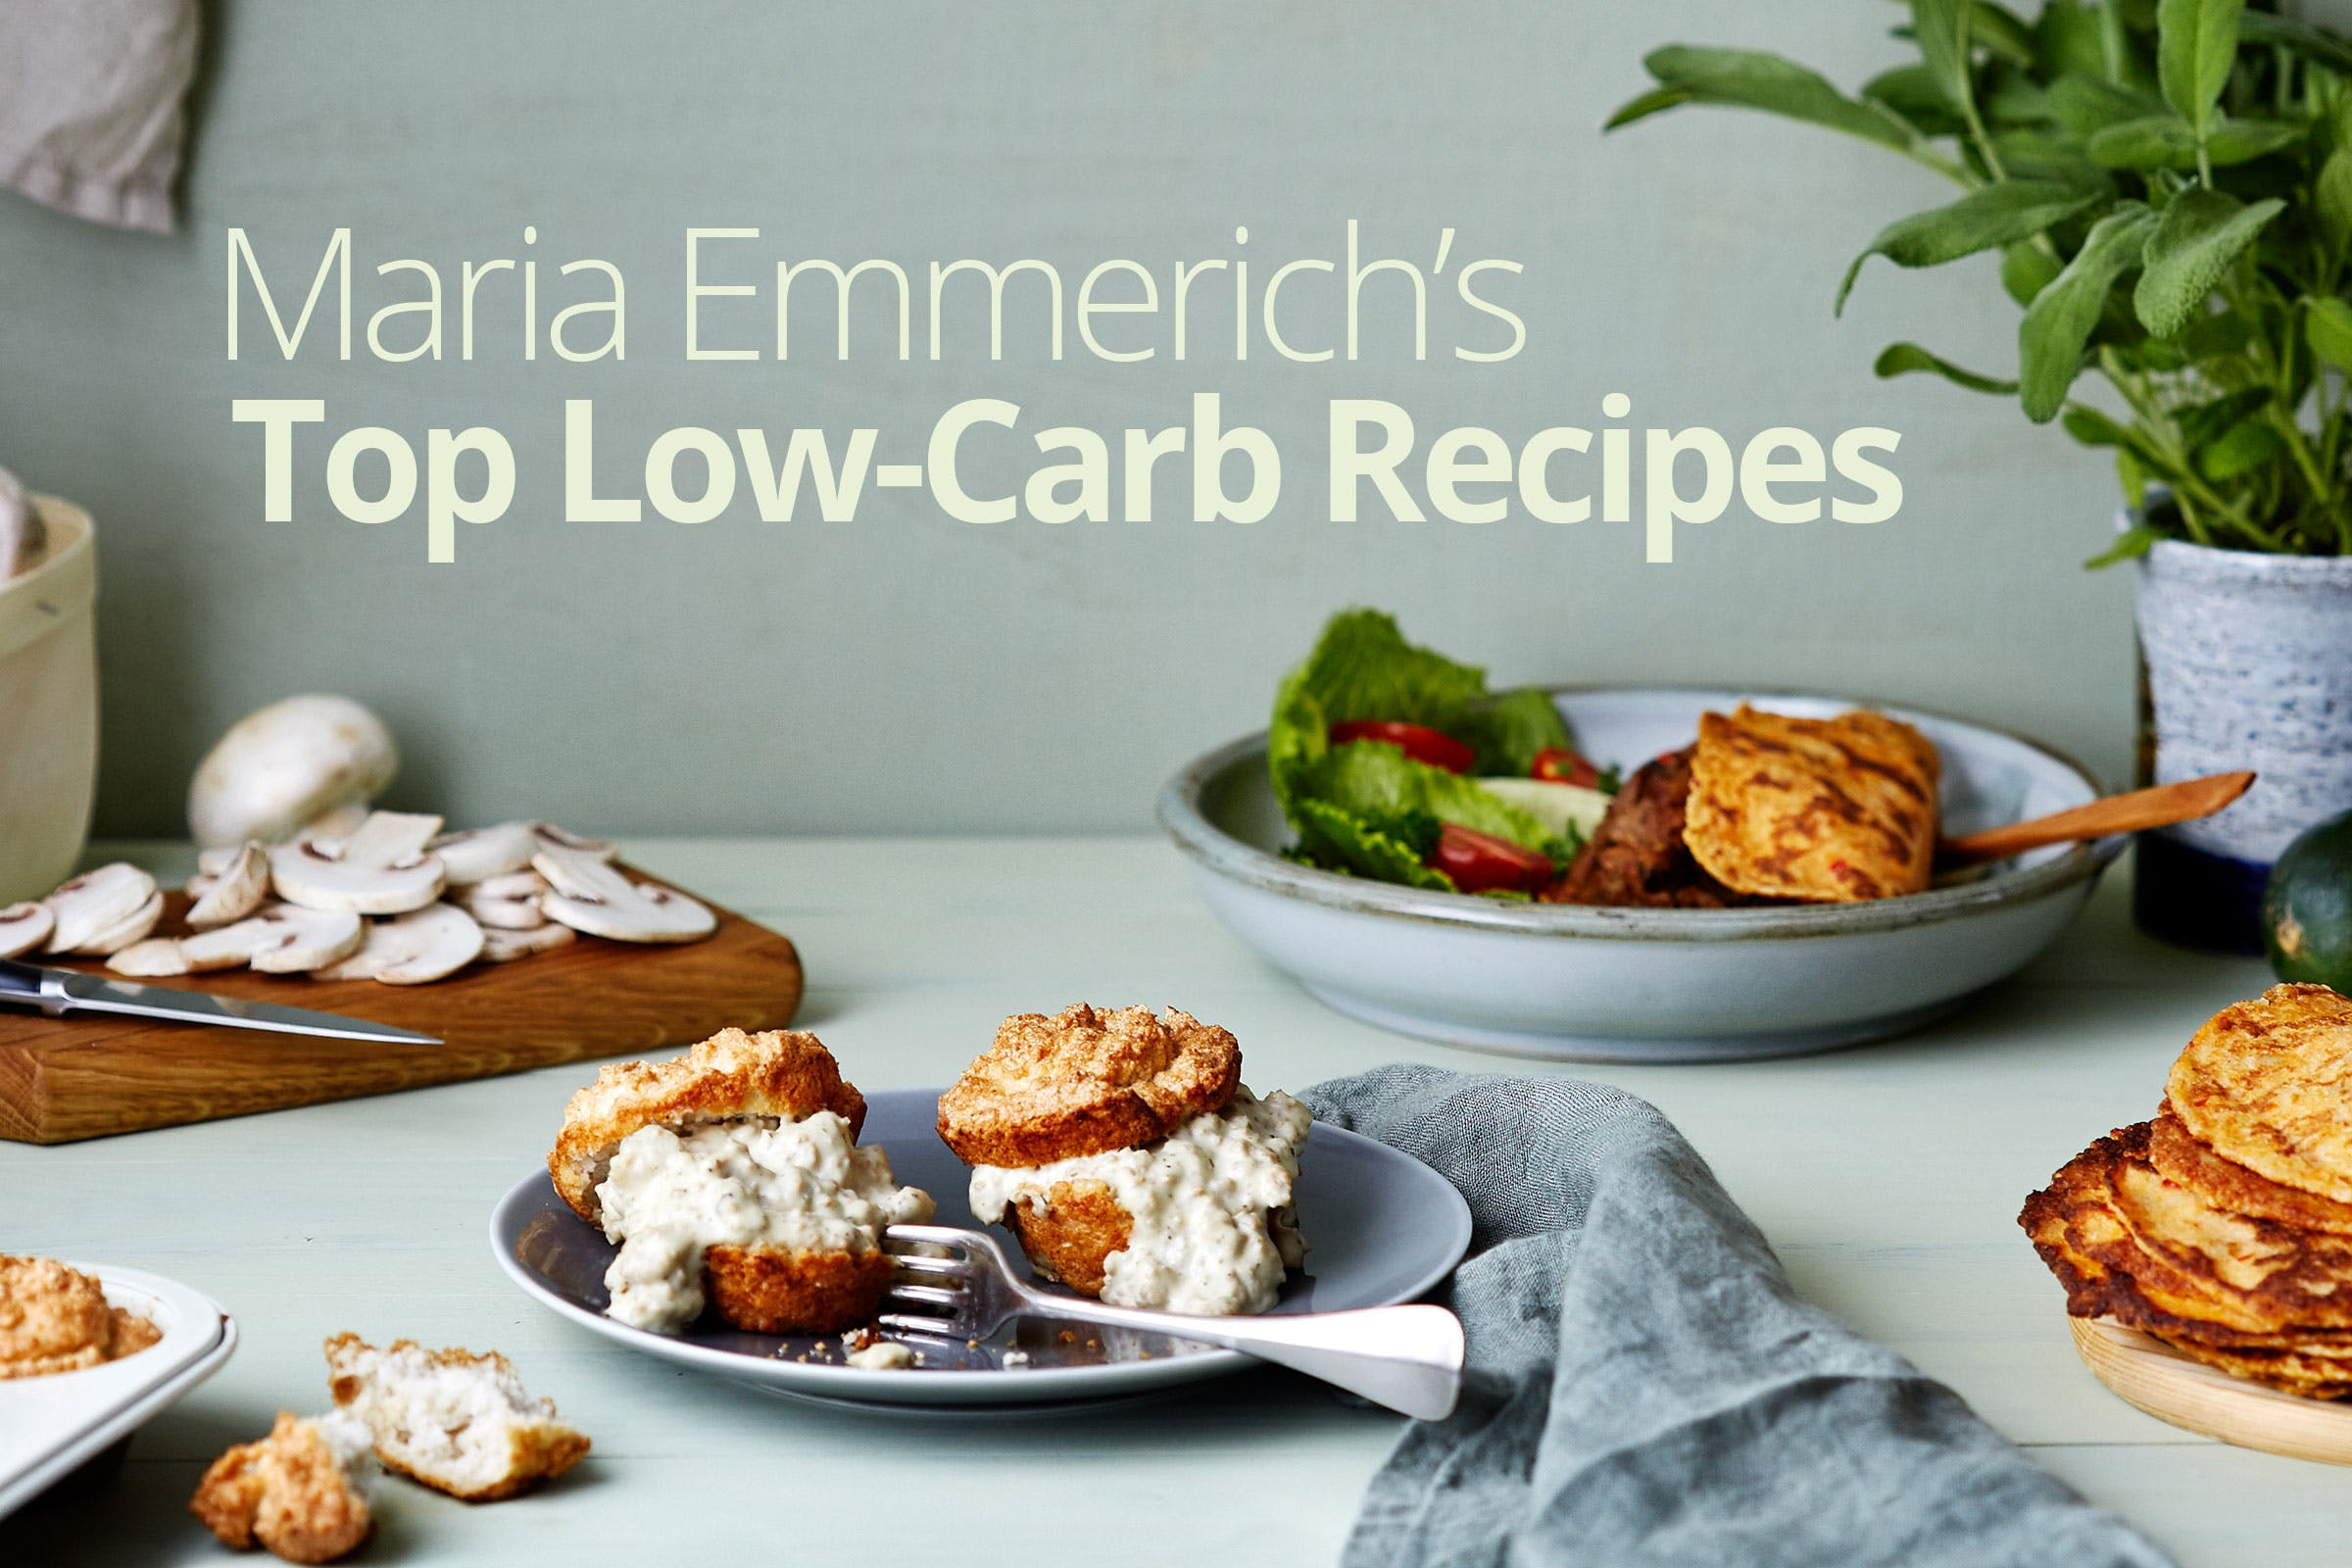 Maria Emmerich's Top Low-Carb and Keto Recipes - Diet Doctor